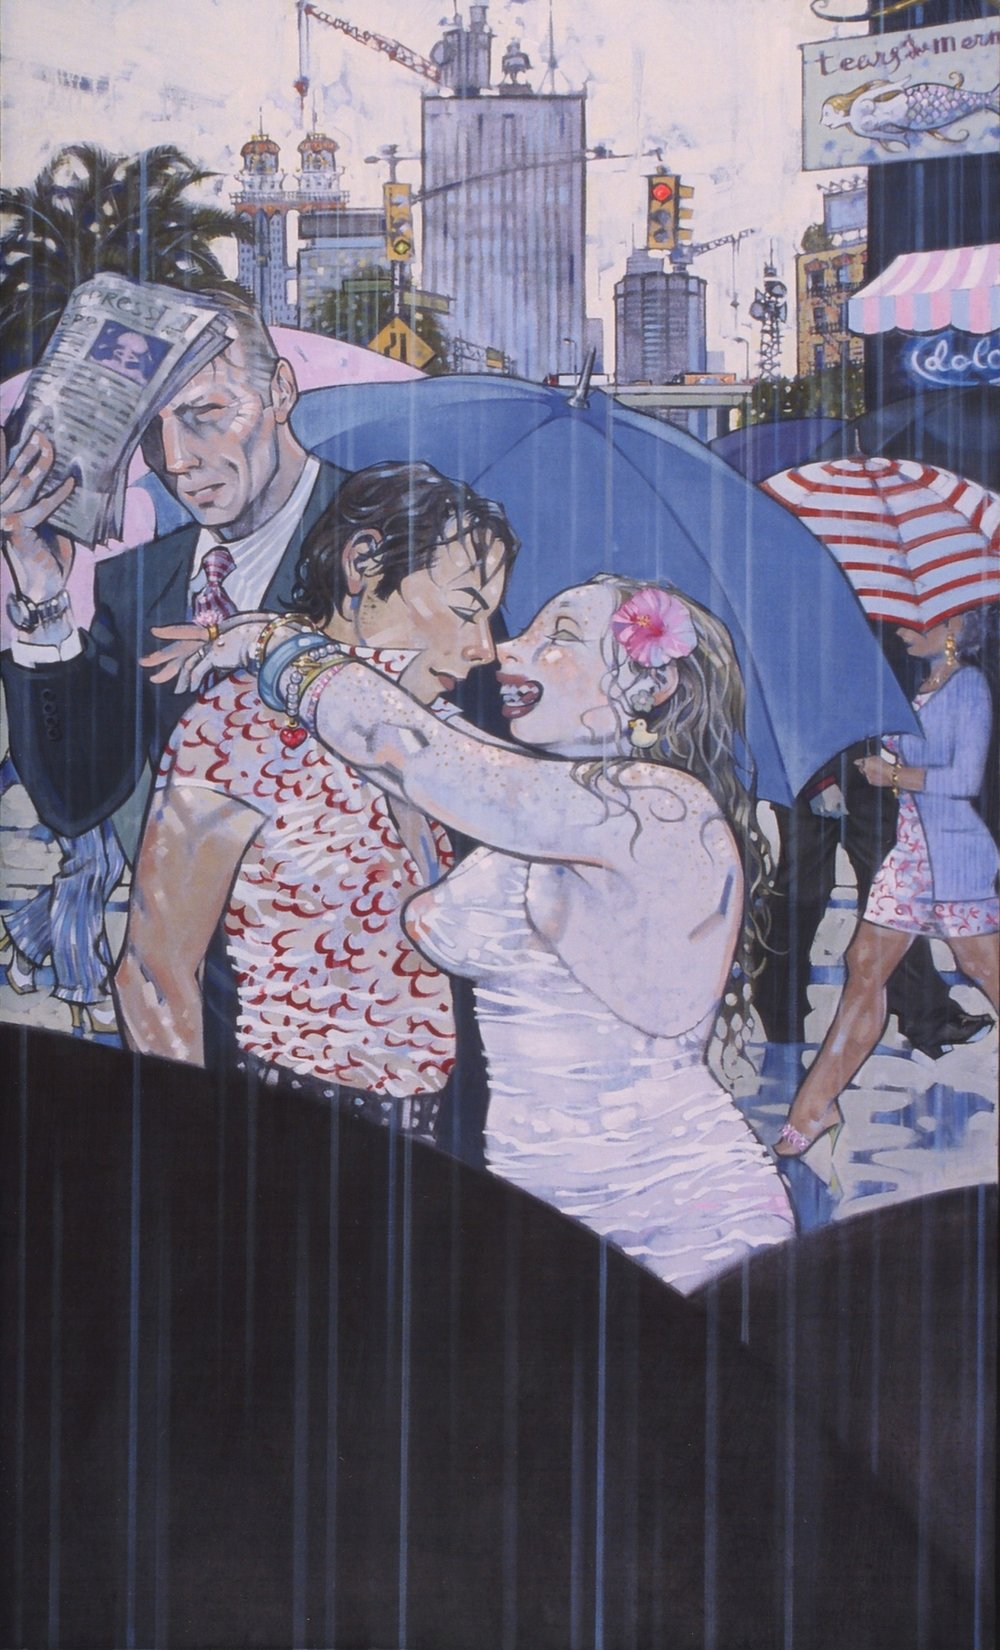 Kiss, 2002, oil on canvas, 68.5 x 40.5 inches